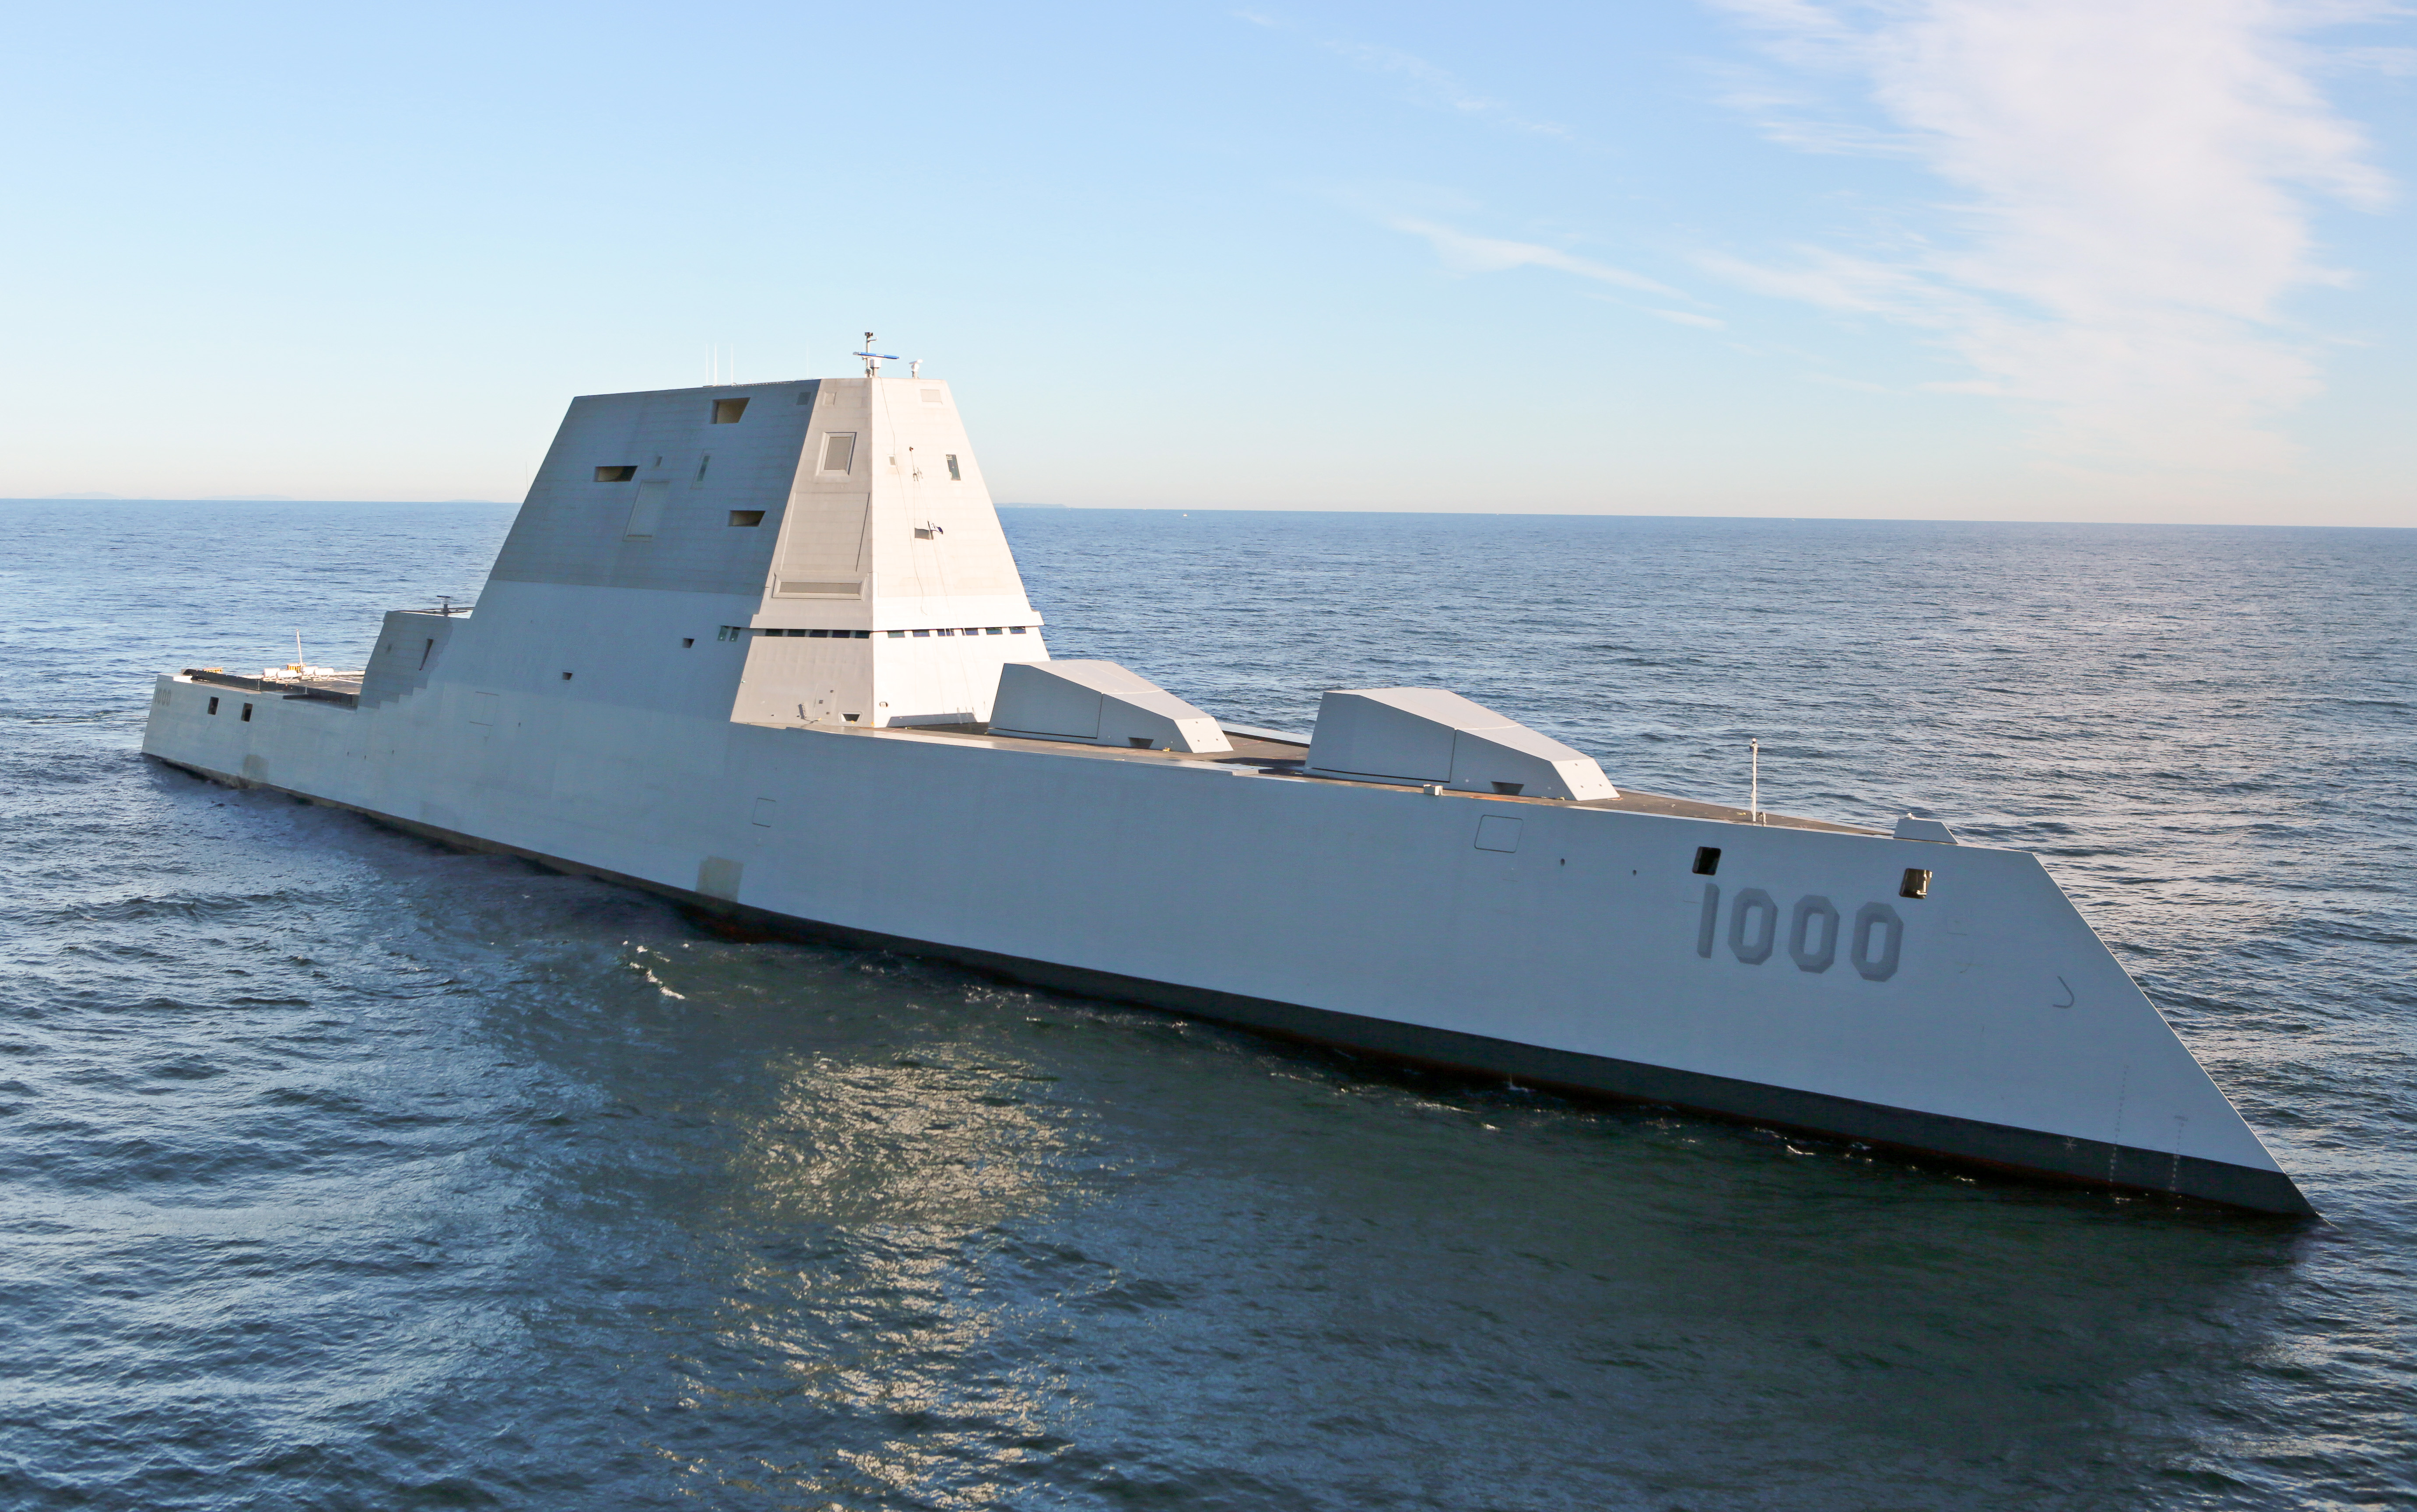 Zumwalt-class destroyer Future_USS_Zumwalt%27s_first_underway_at_sea